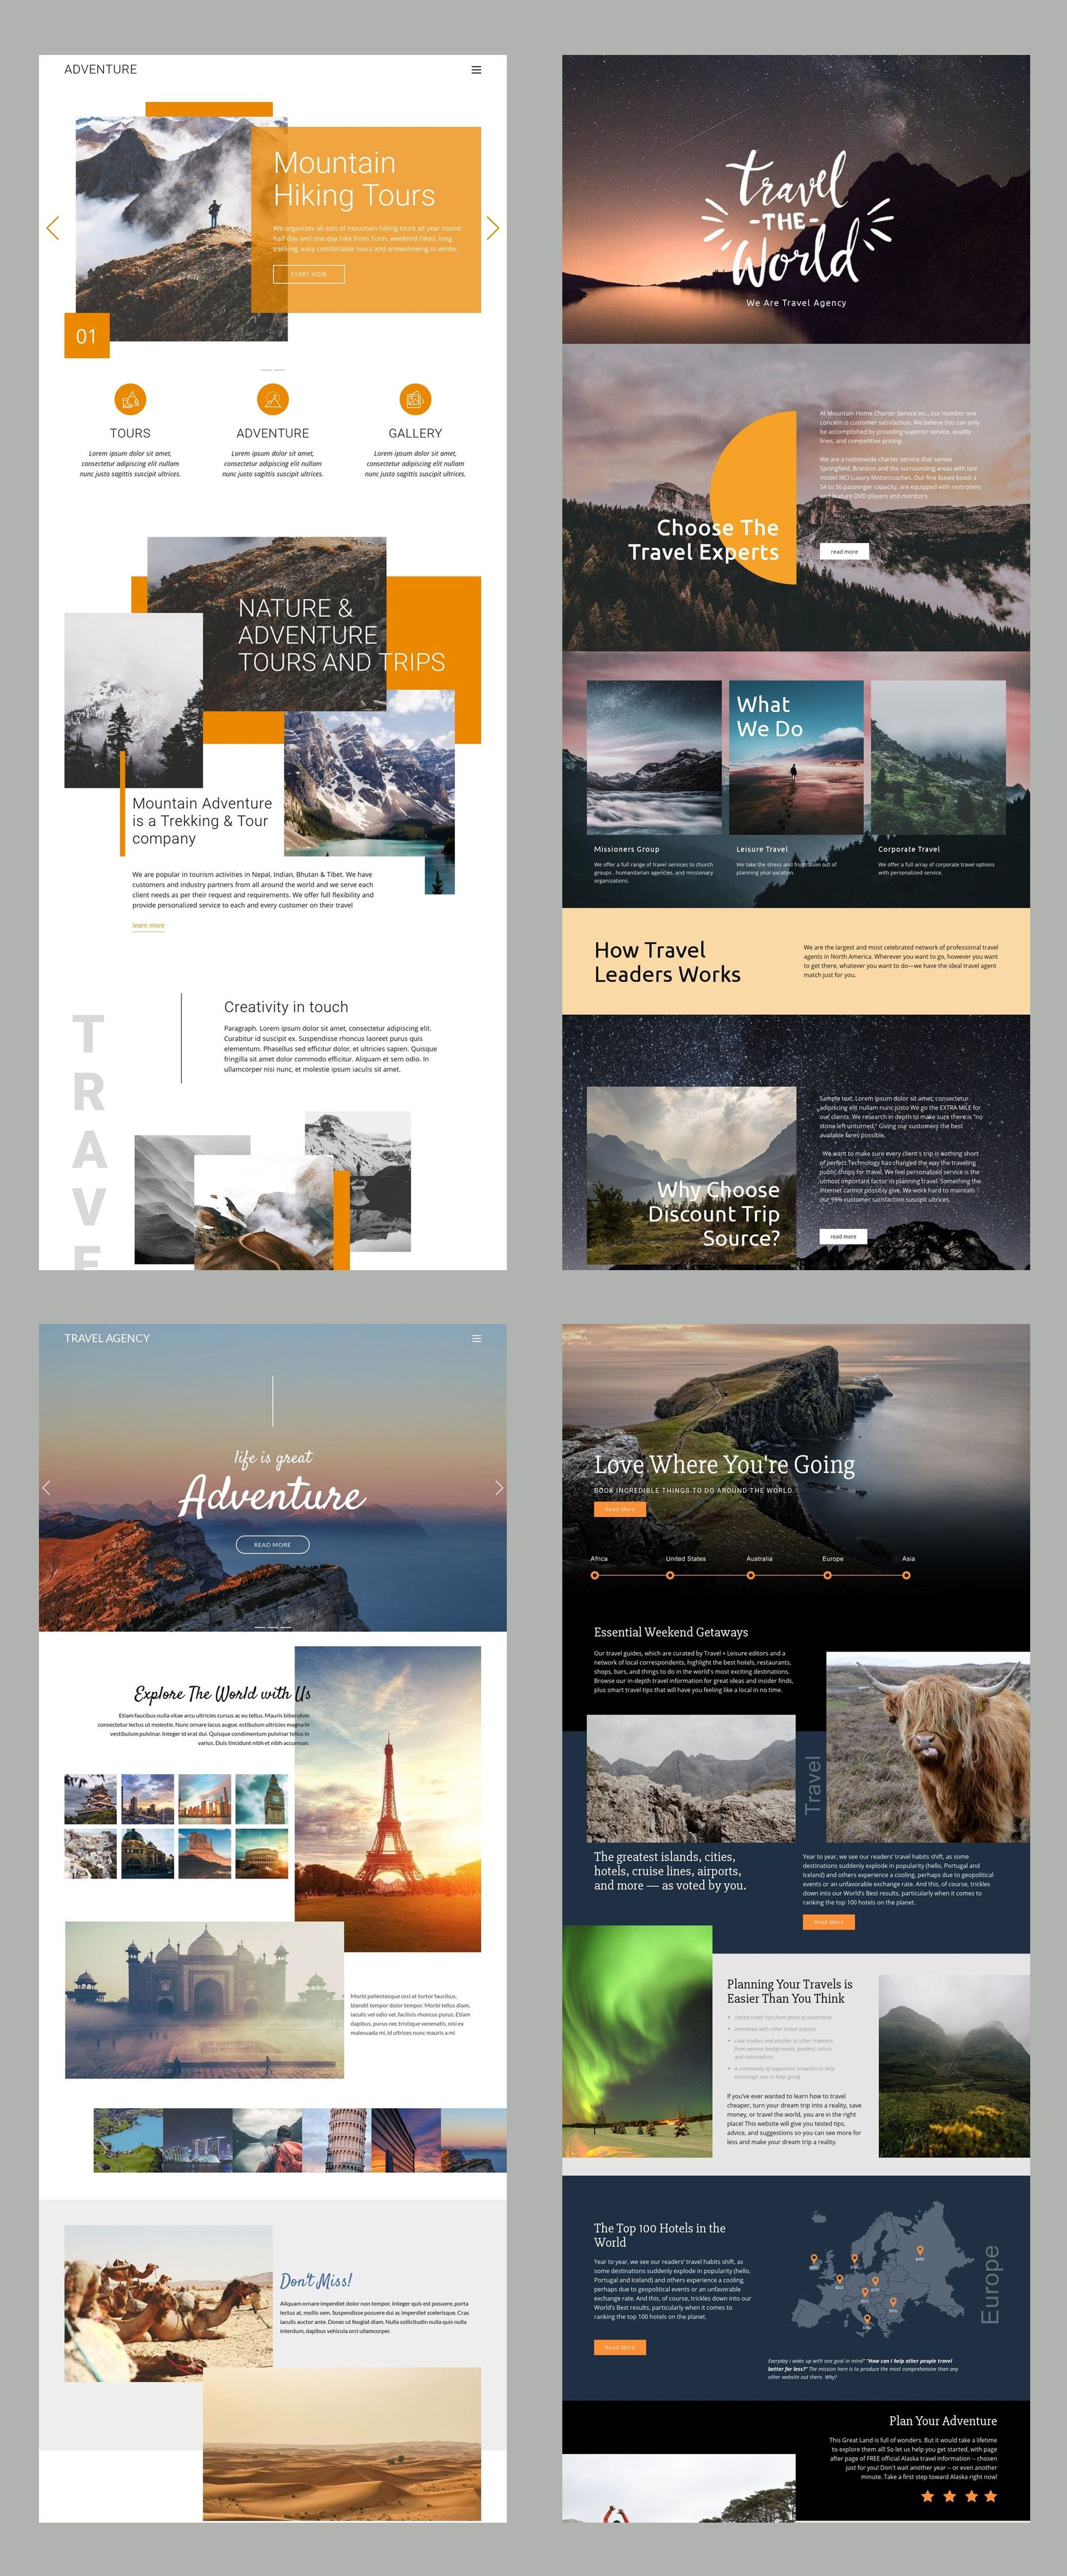 Free Templates By Nicepage Builder Website Layout Inspiration Travel Website Design Web Layout Design